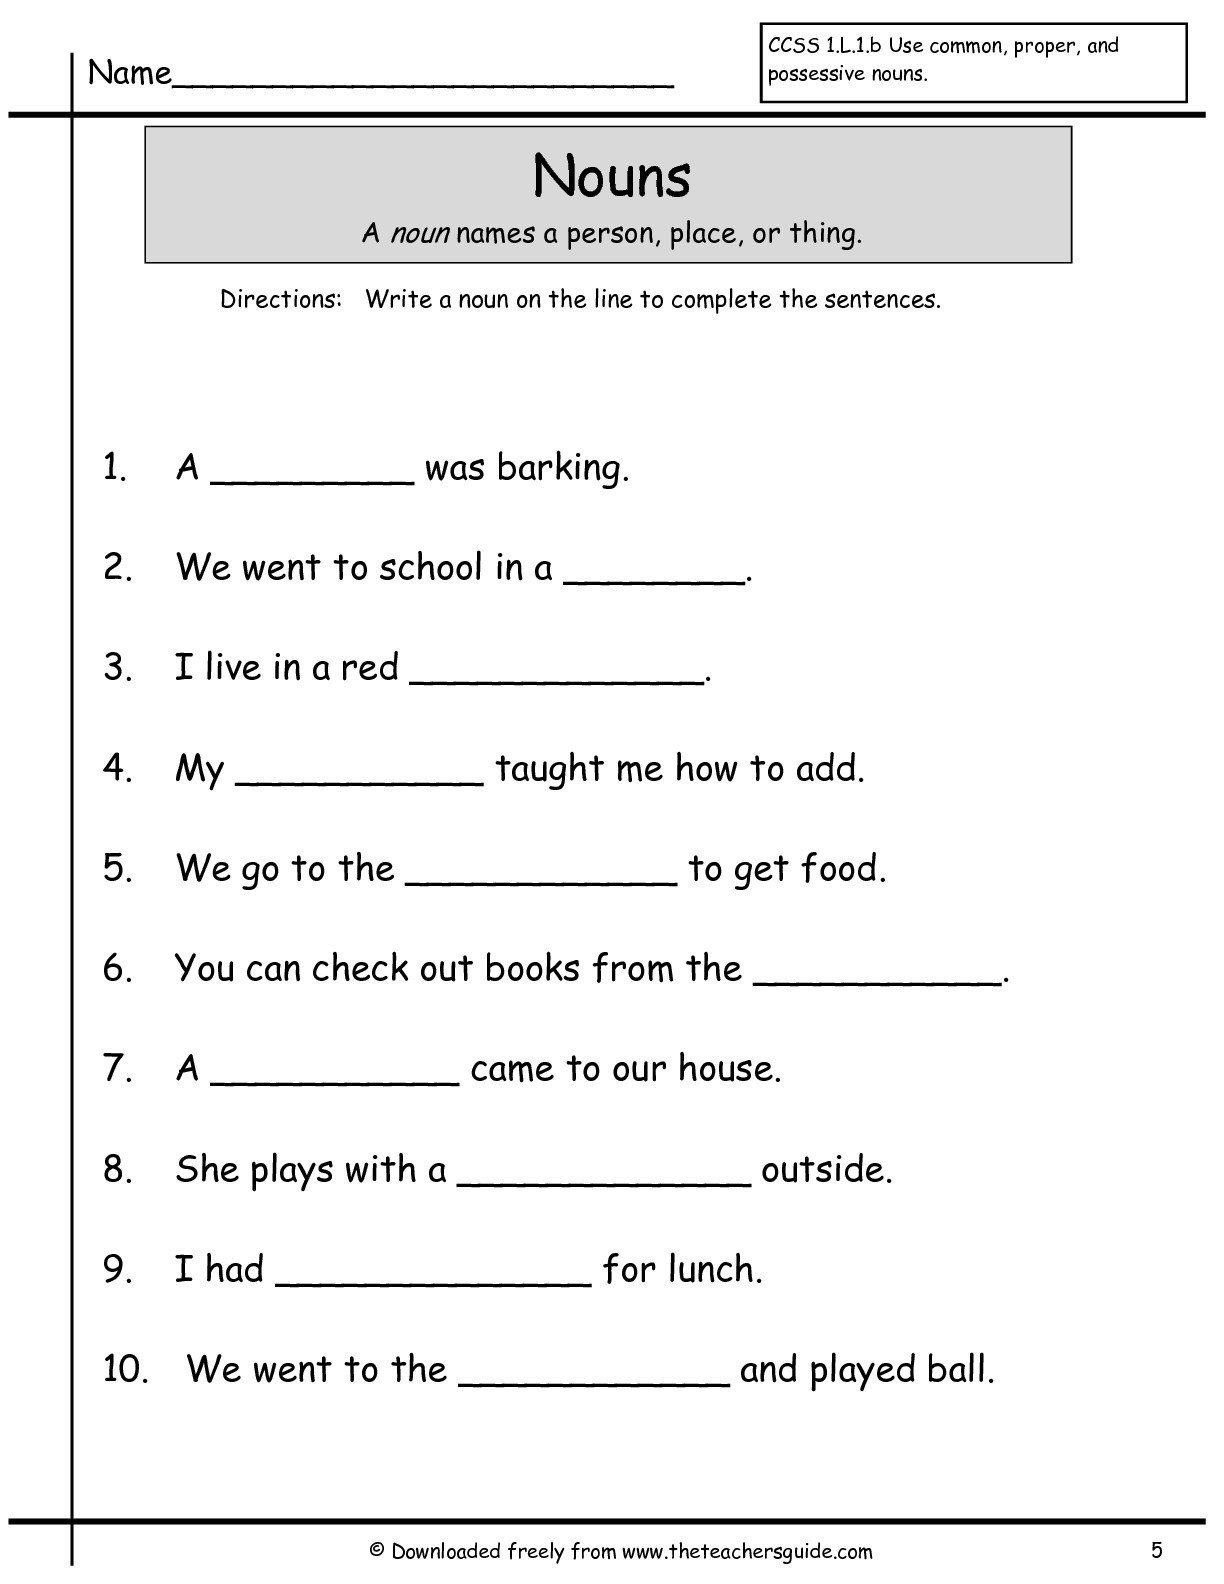 Social Studies Worksheet 3rd Grade social Stu First Grade Worksheets Printable and Stu S 1st